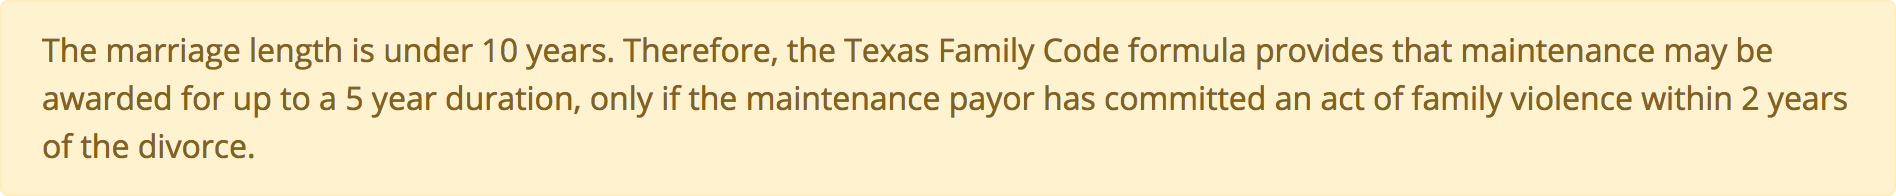 Texas Maintenance Calculator family violence exception